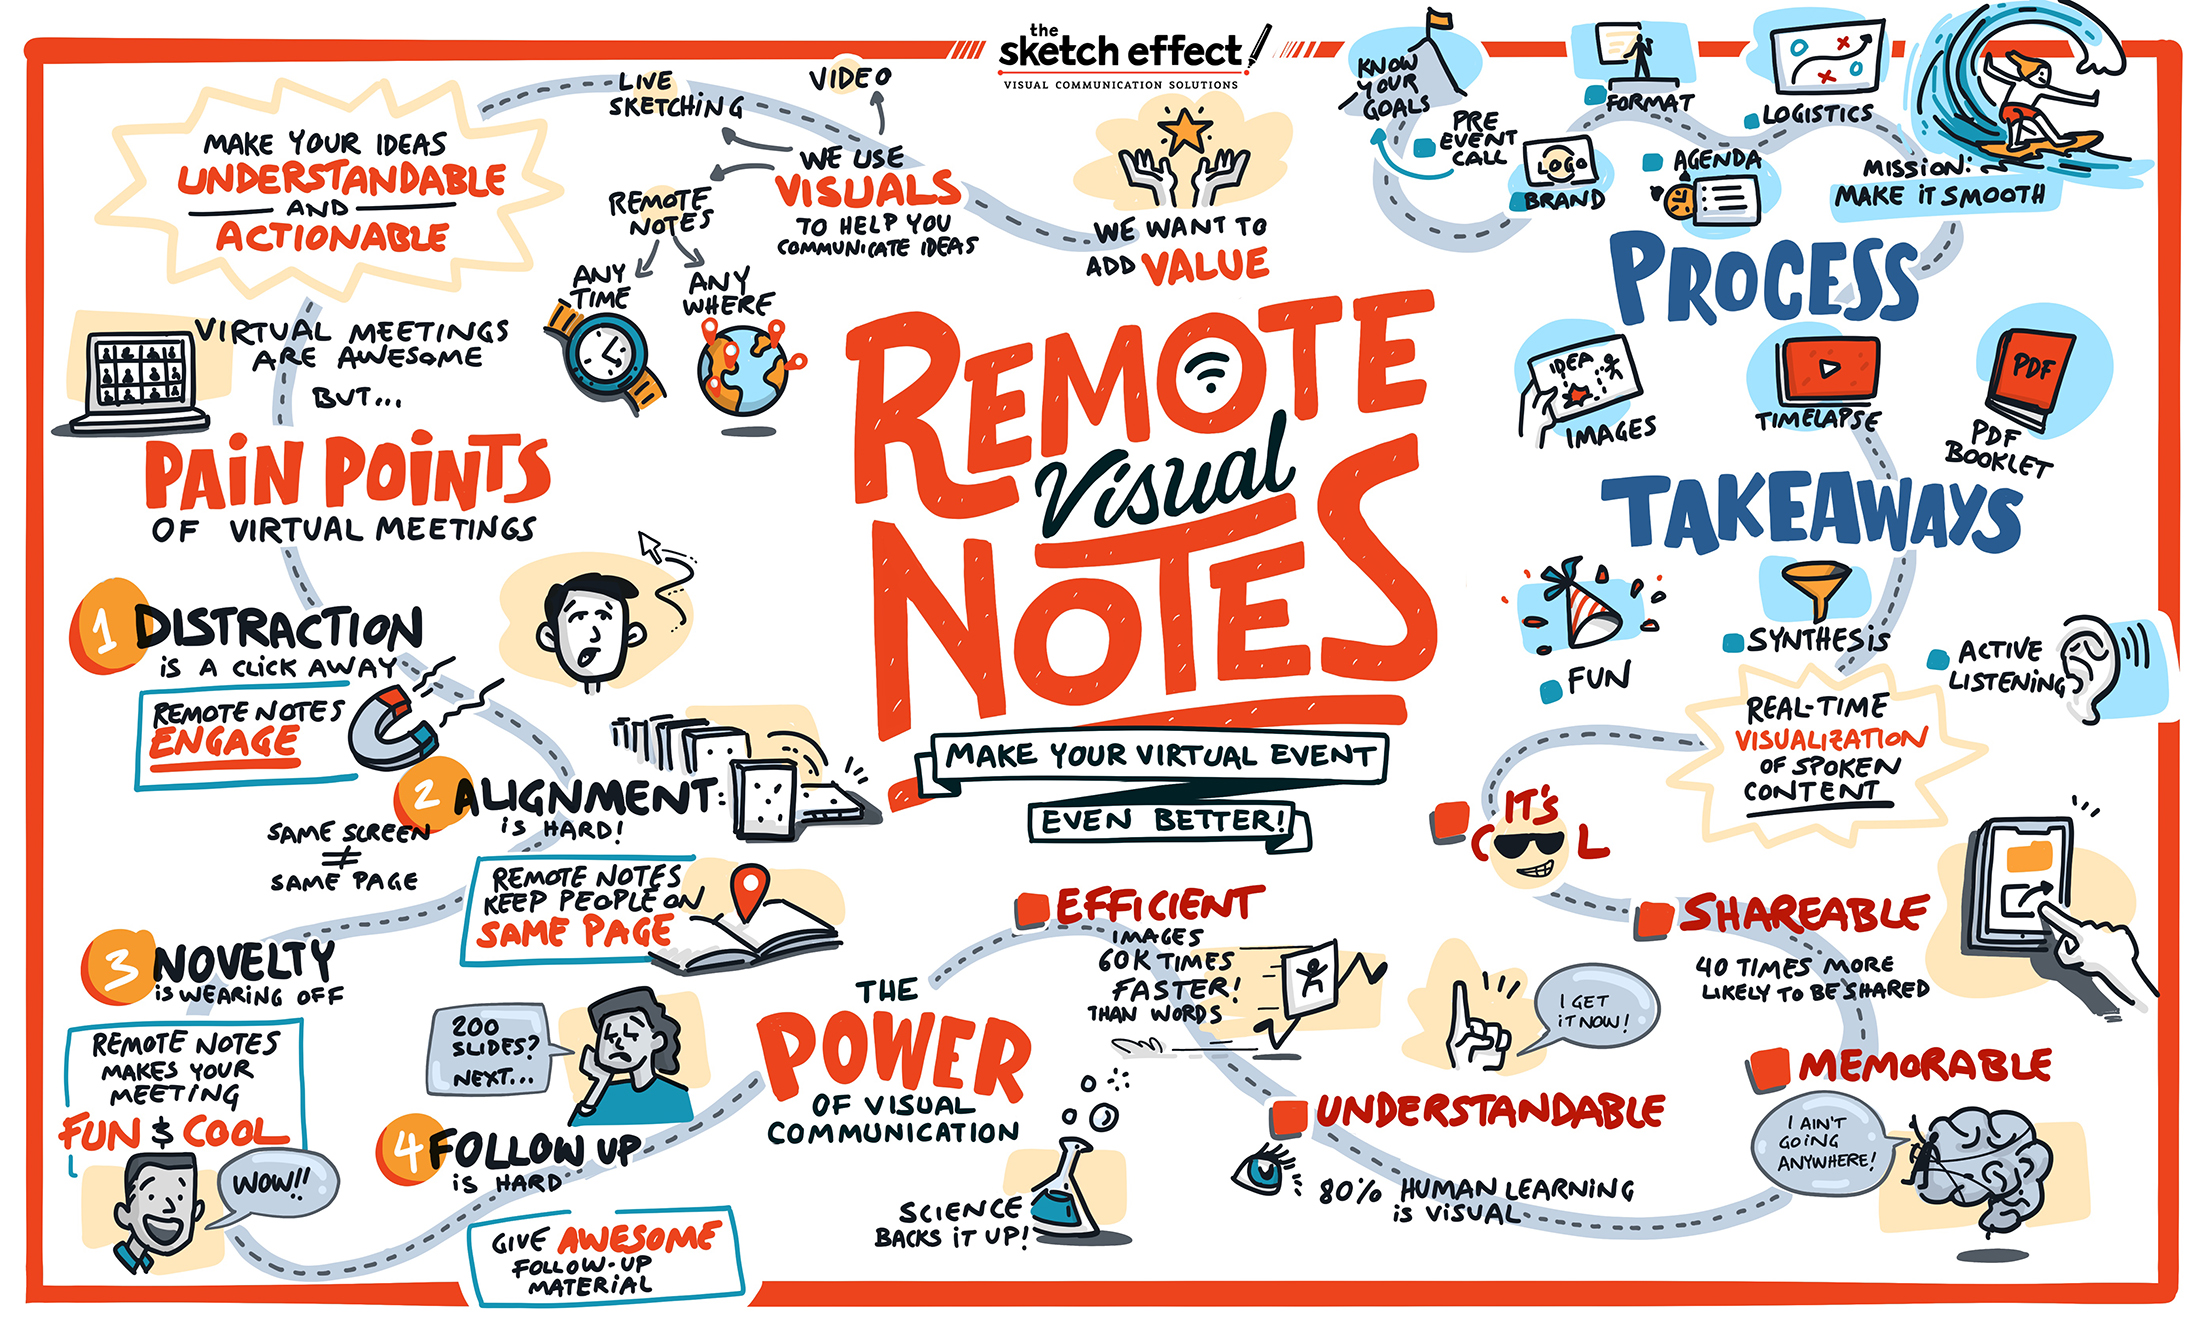 """Graphic Recording created by The Sketch Effect titled """"Remote Visual Notes"""""""